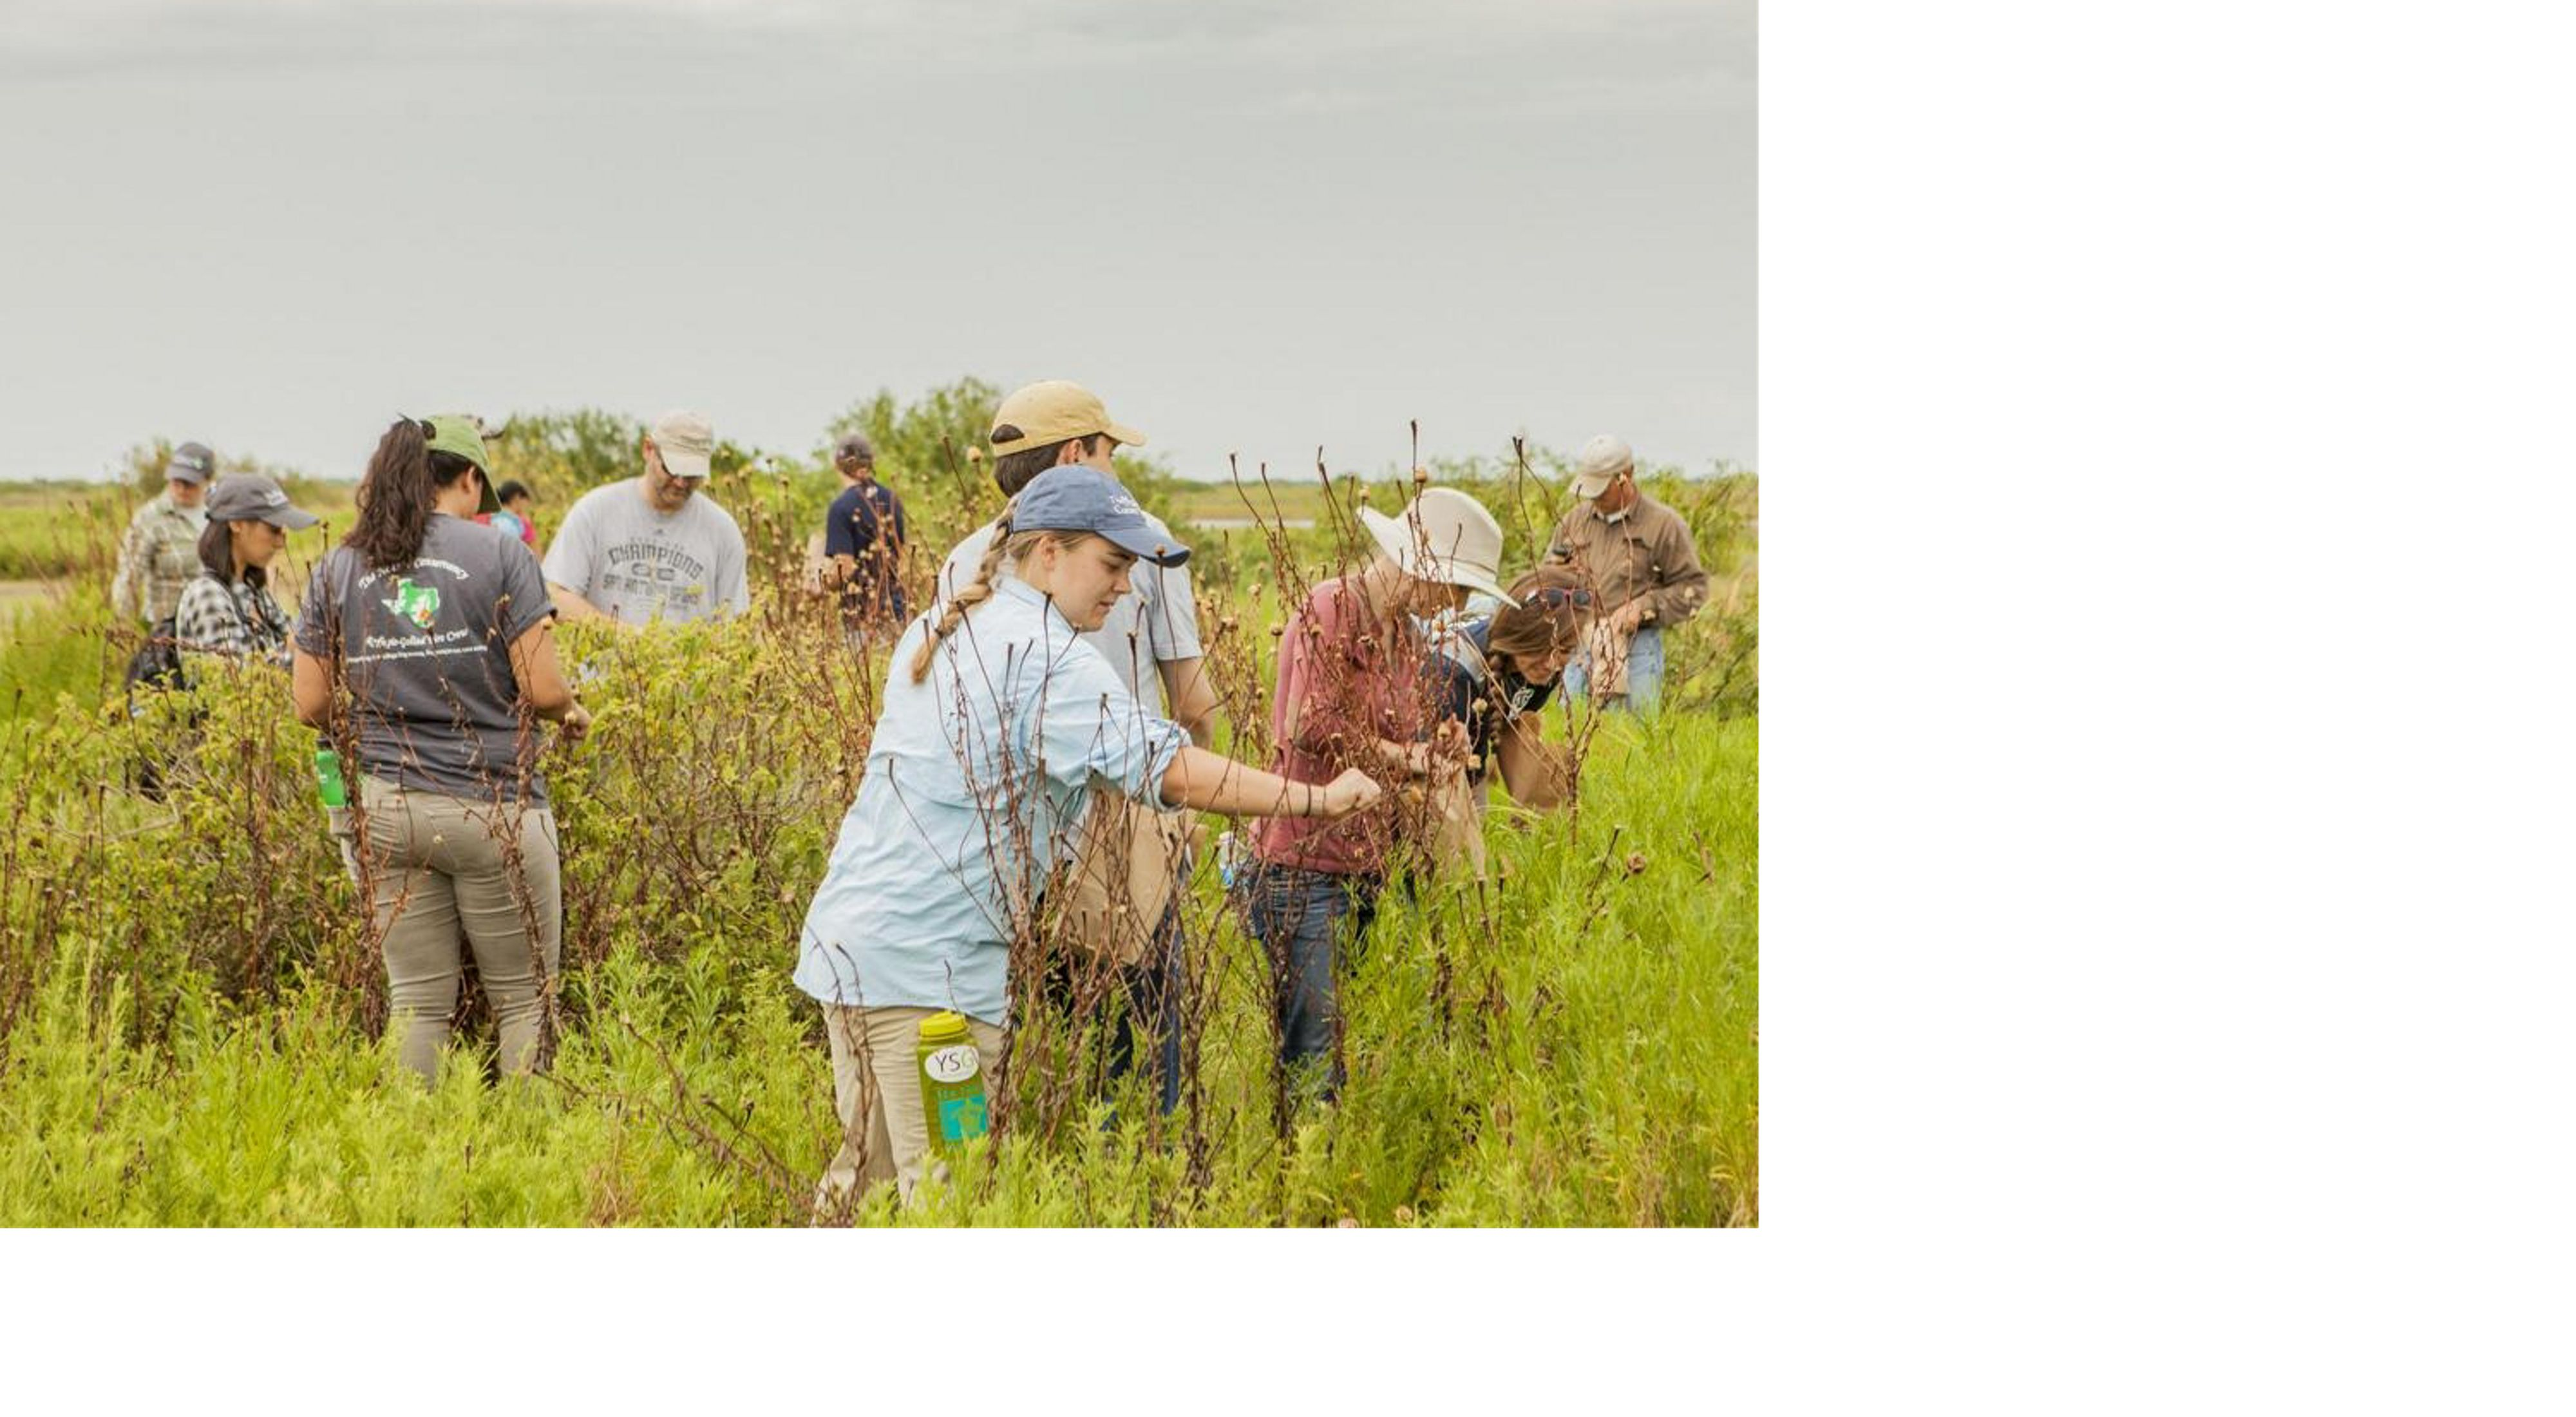 A group of youth sprinkle seeds on a grassy prairie.